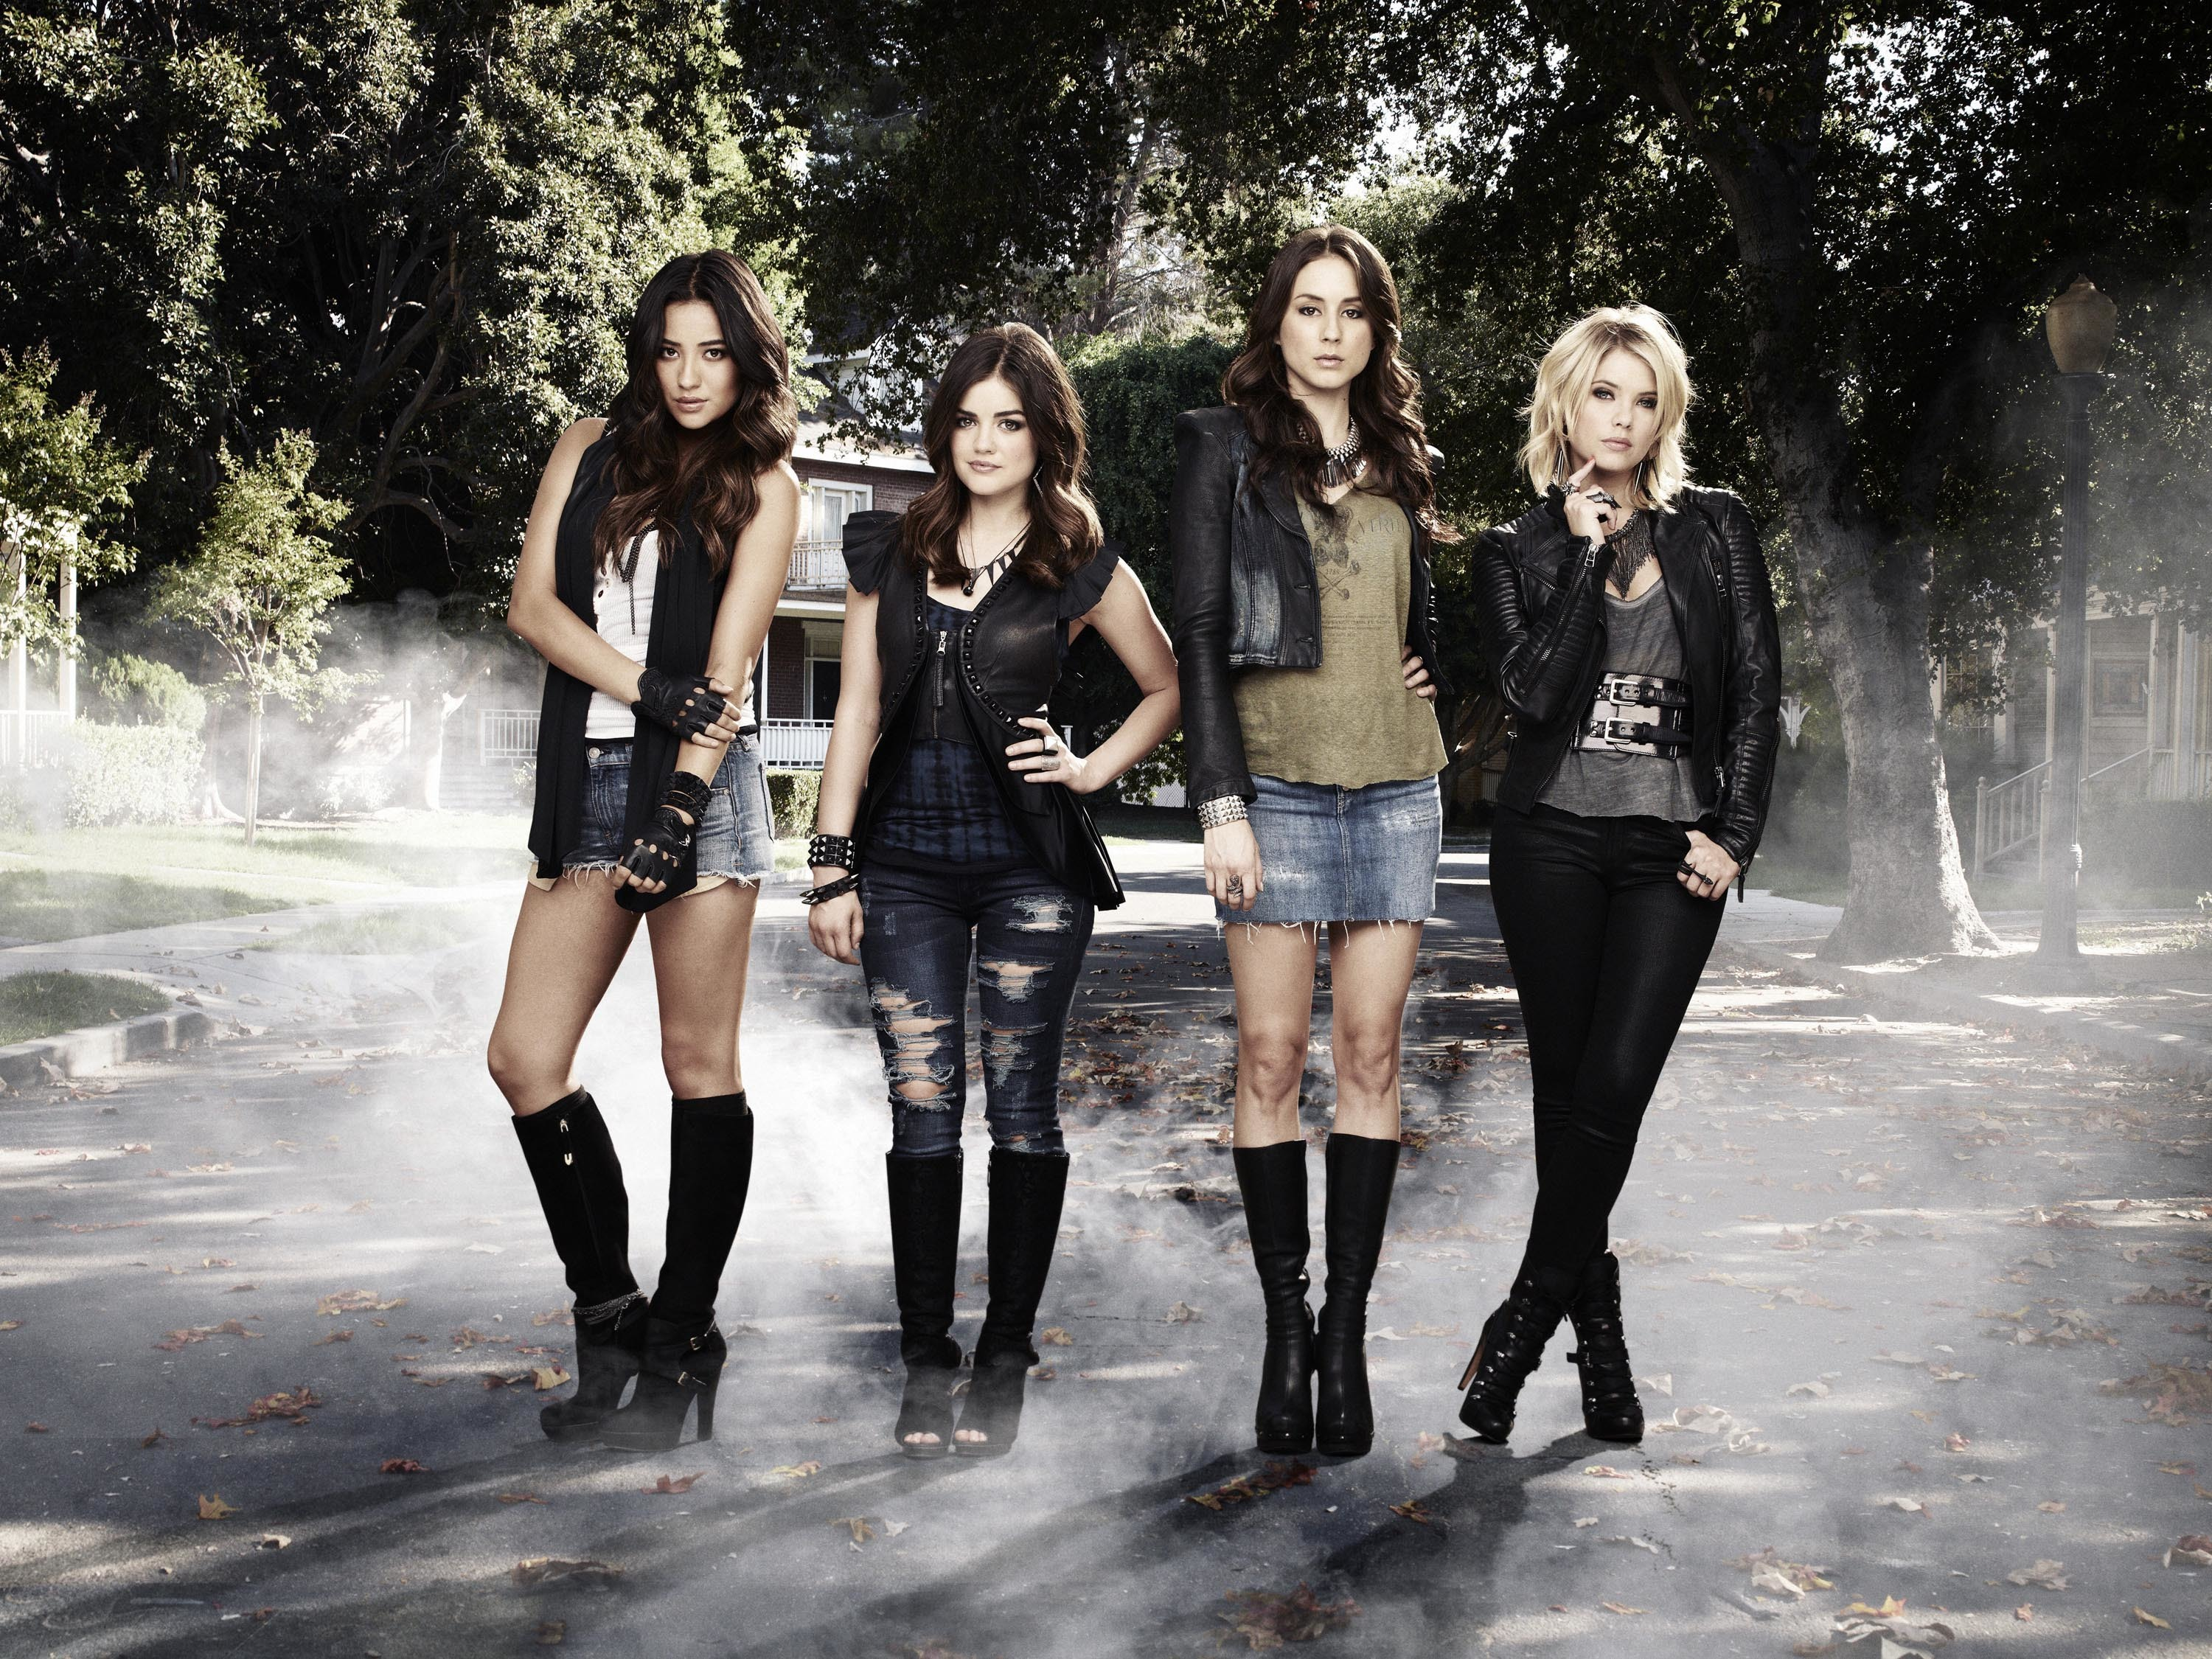 """Shay Mitchell, Lucy Hale, Troian Bellisario and Ashley Benson appear in a promotional photo for ABC Family's """"Pretty Little Liars,"""" which debuted in 2010."""